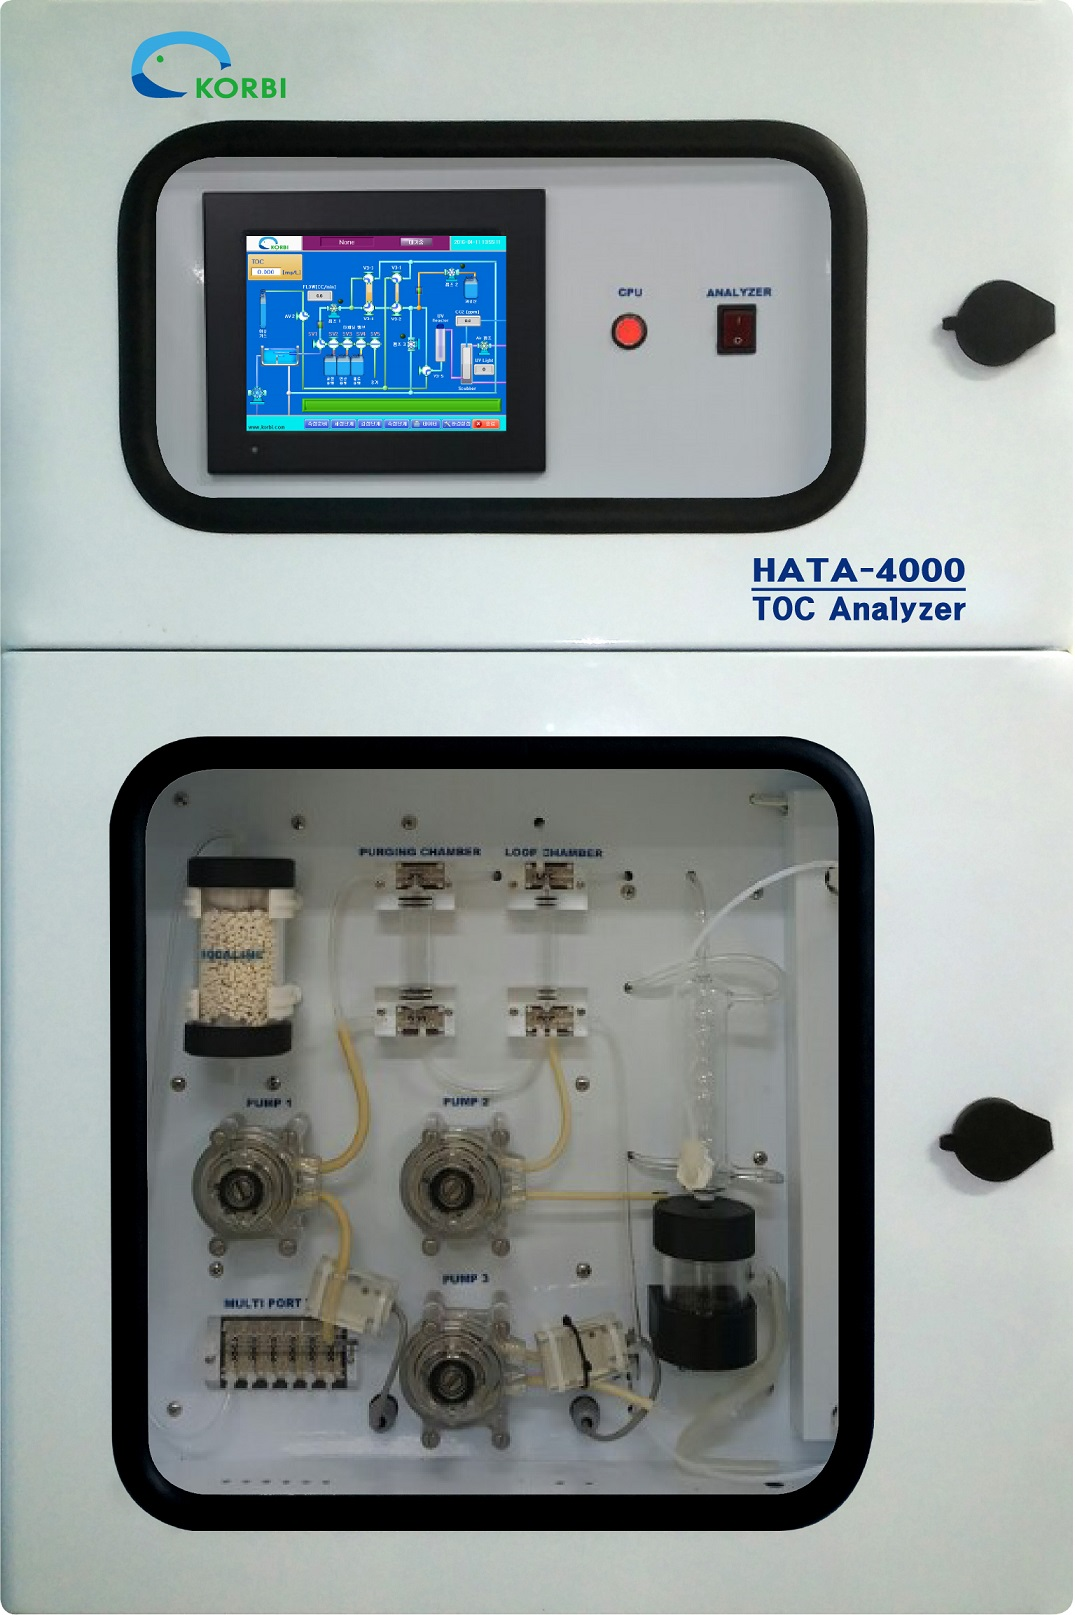 Online TOC Analyzer (HATA-4000)